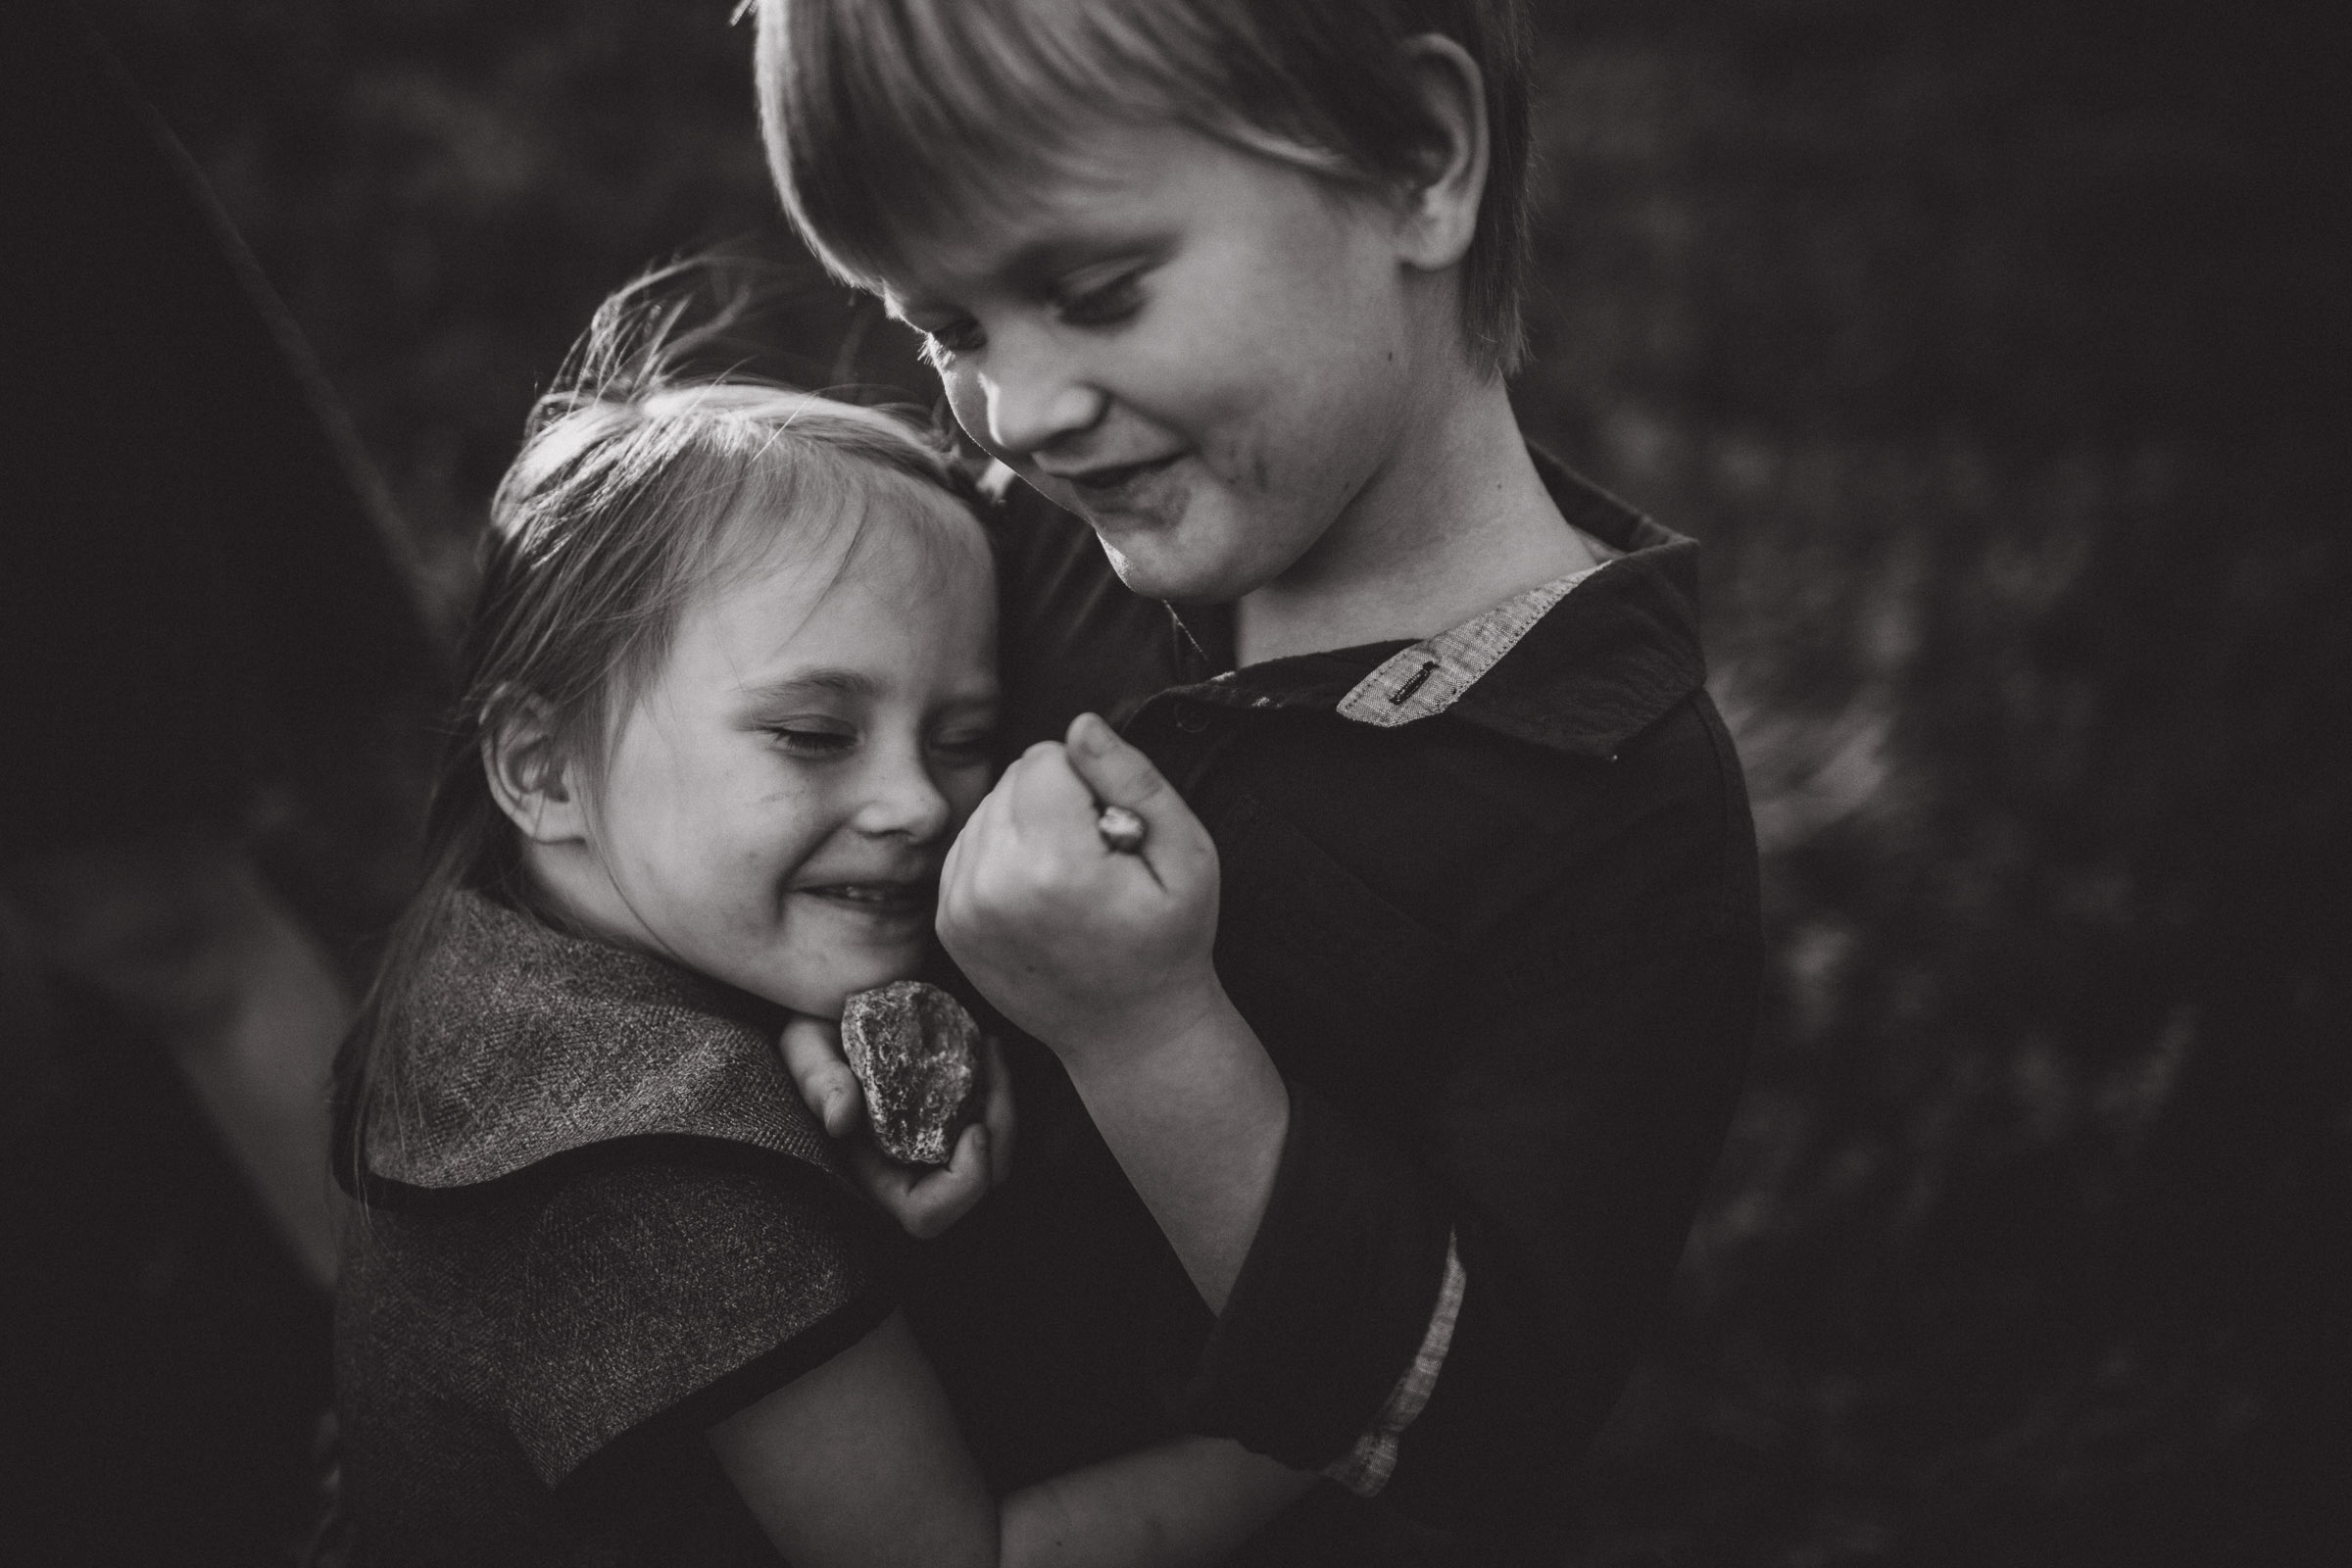 black and white portrait of brother and sister together